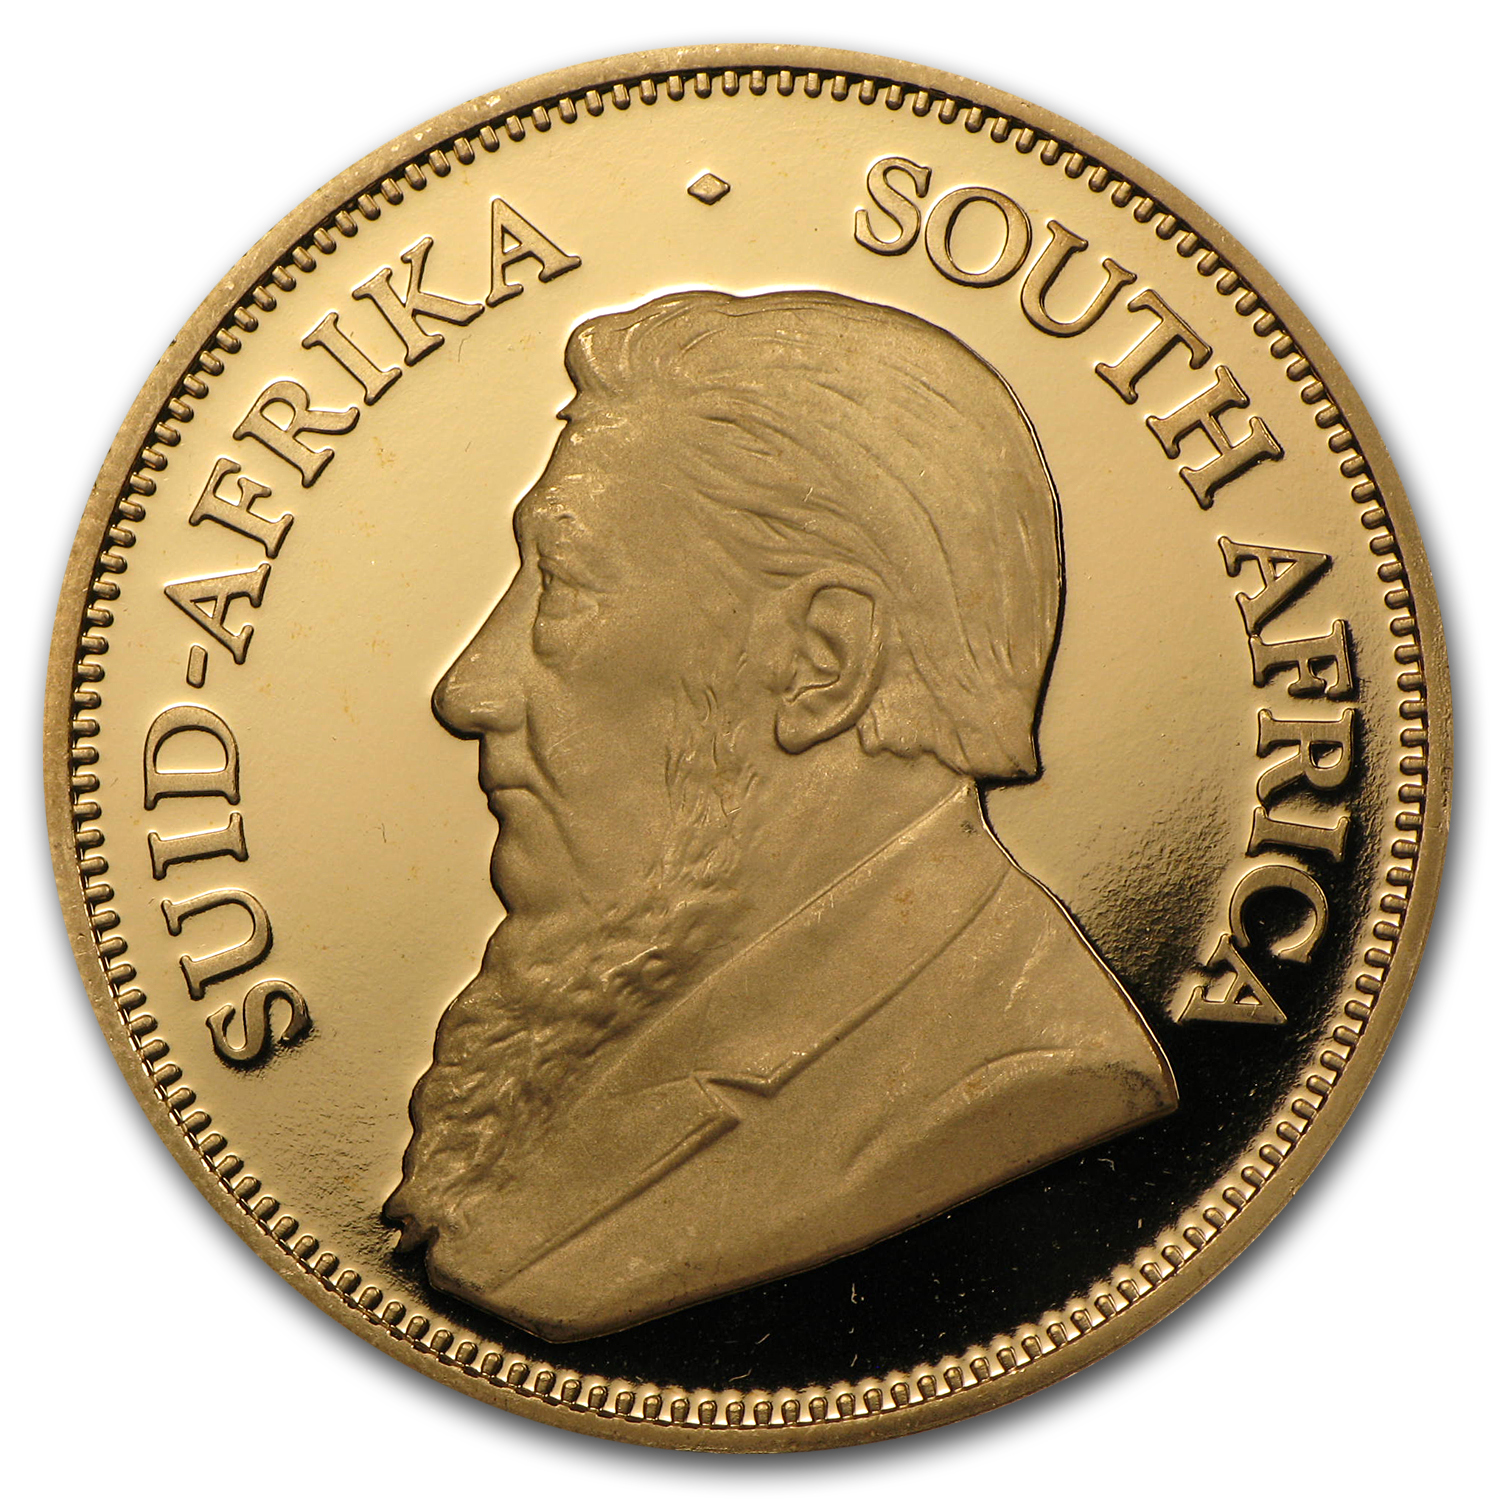 2006 1 oz Gold South African Krugerrand (Proof)